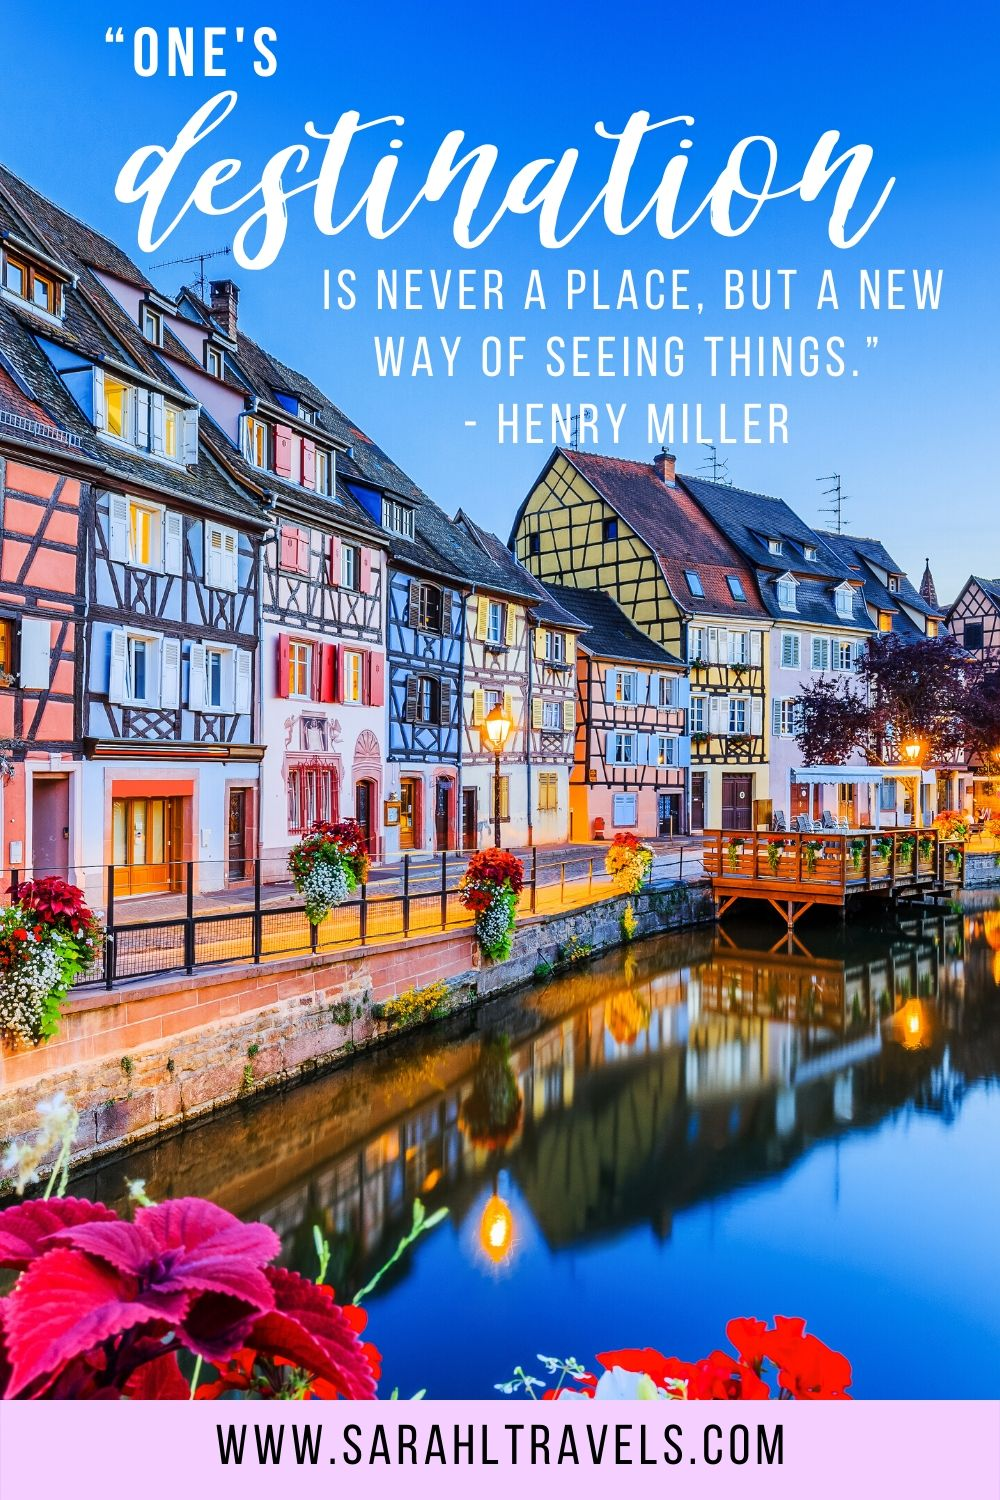 """Colorful buildings in the French countryside with quote """"One's destination is never a place, but a new way of seeing things."""""""